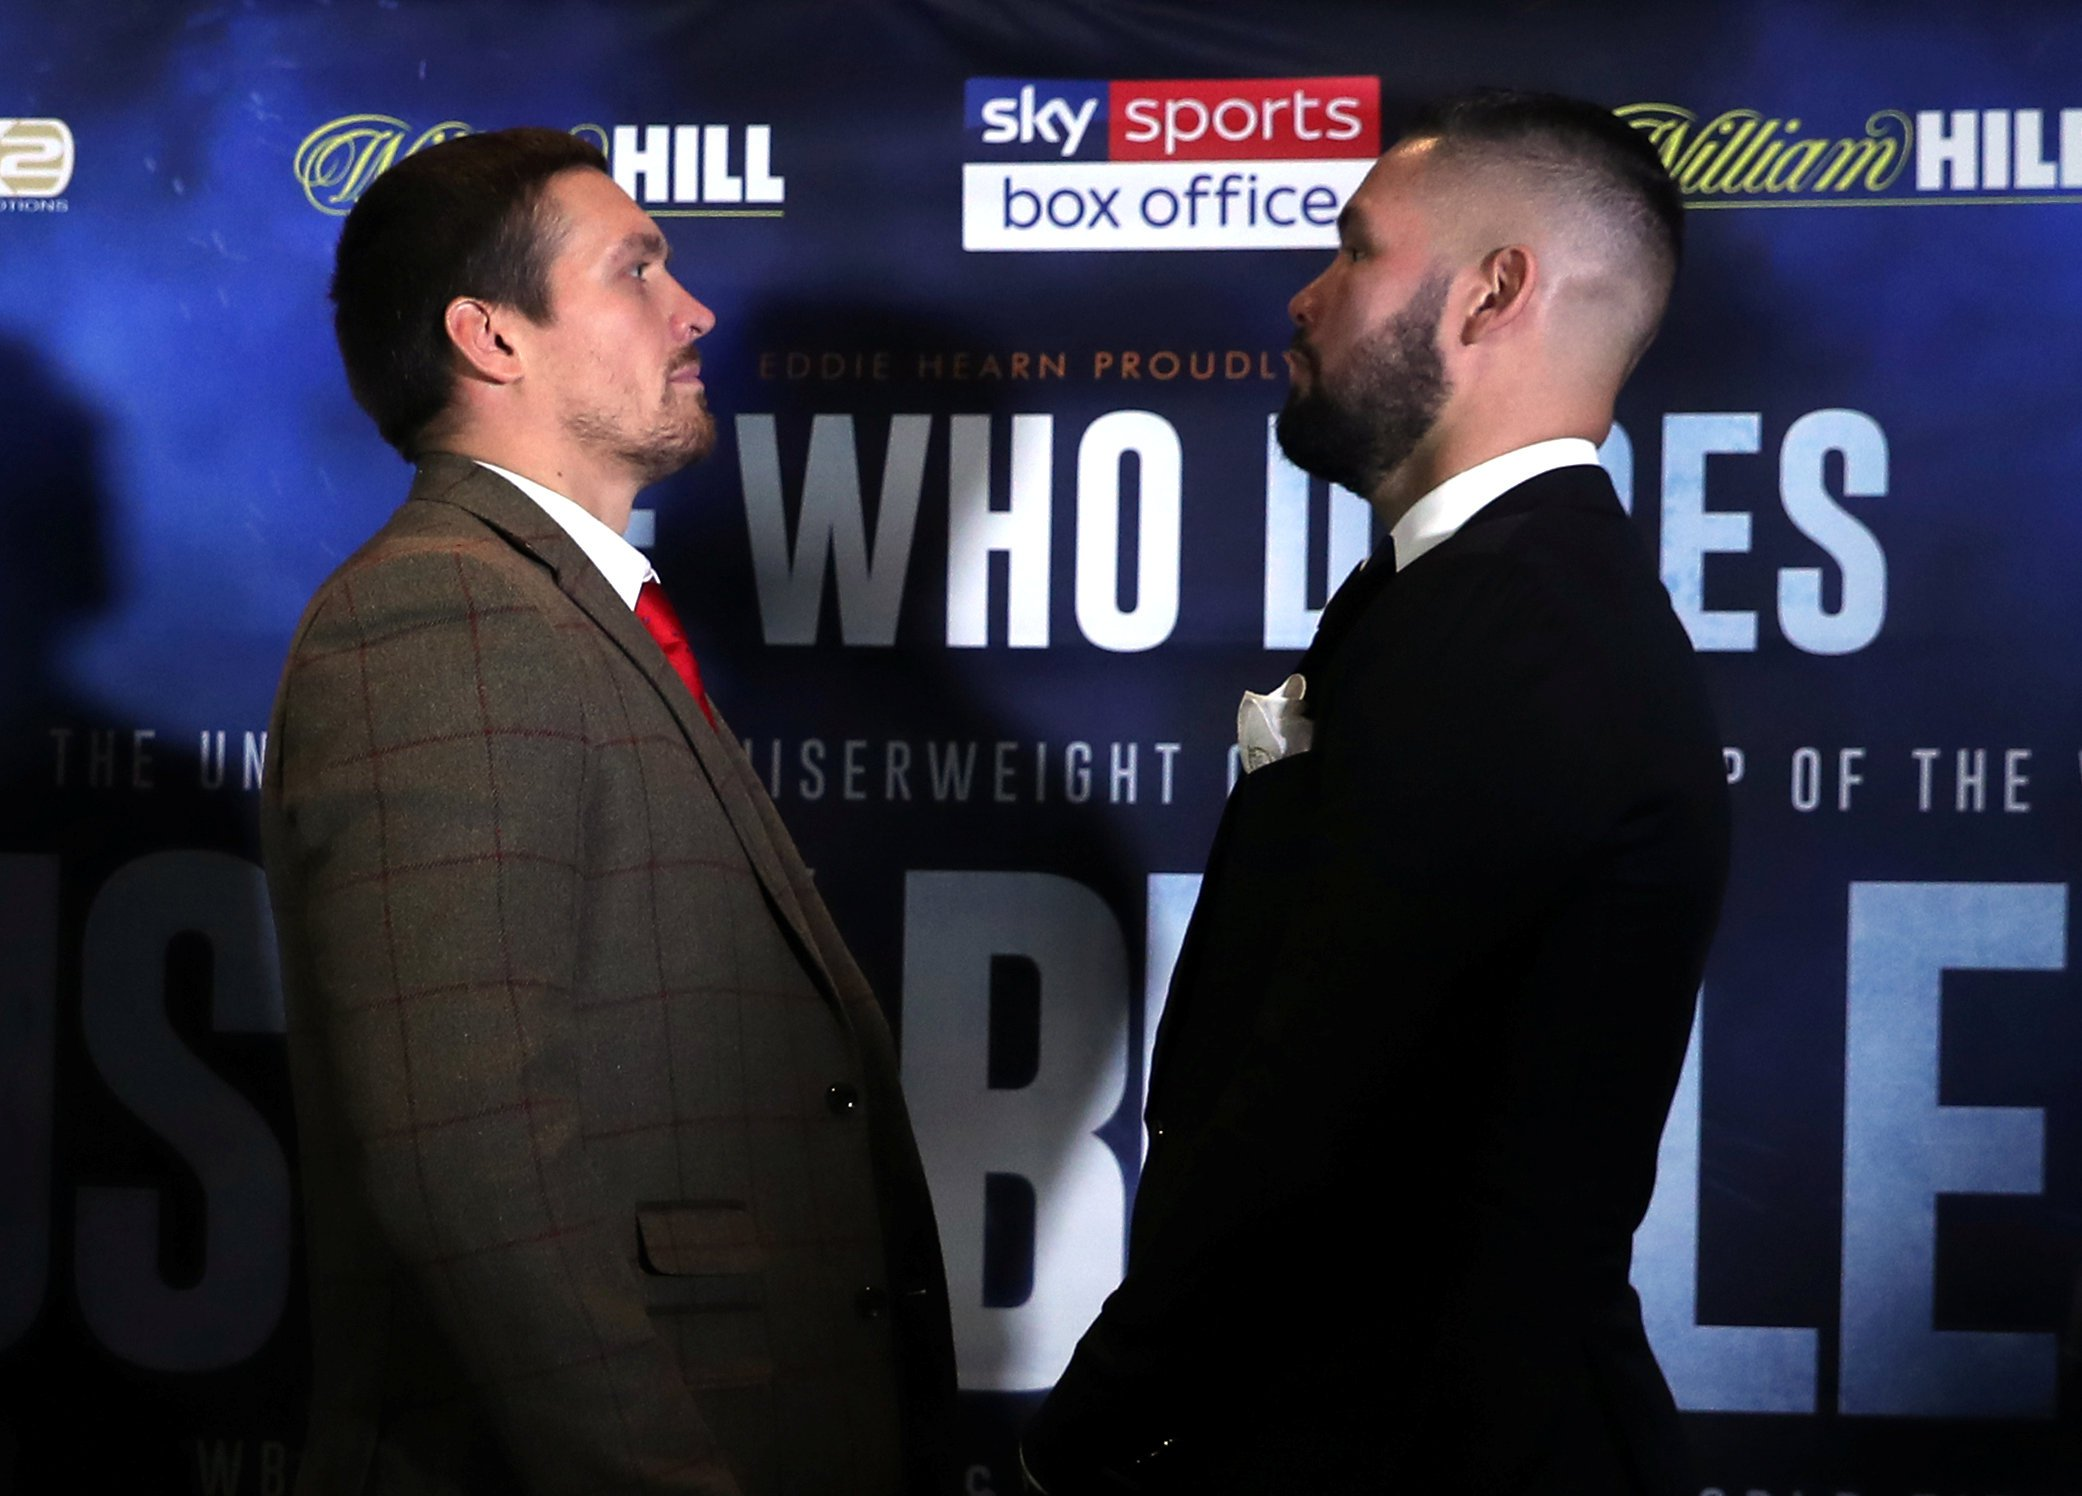 Tony Bellew vs Oleksandr Usyk tickets, date, undercard and odds